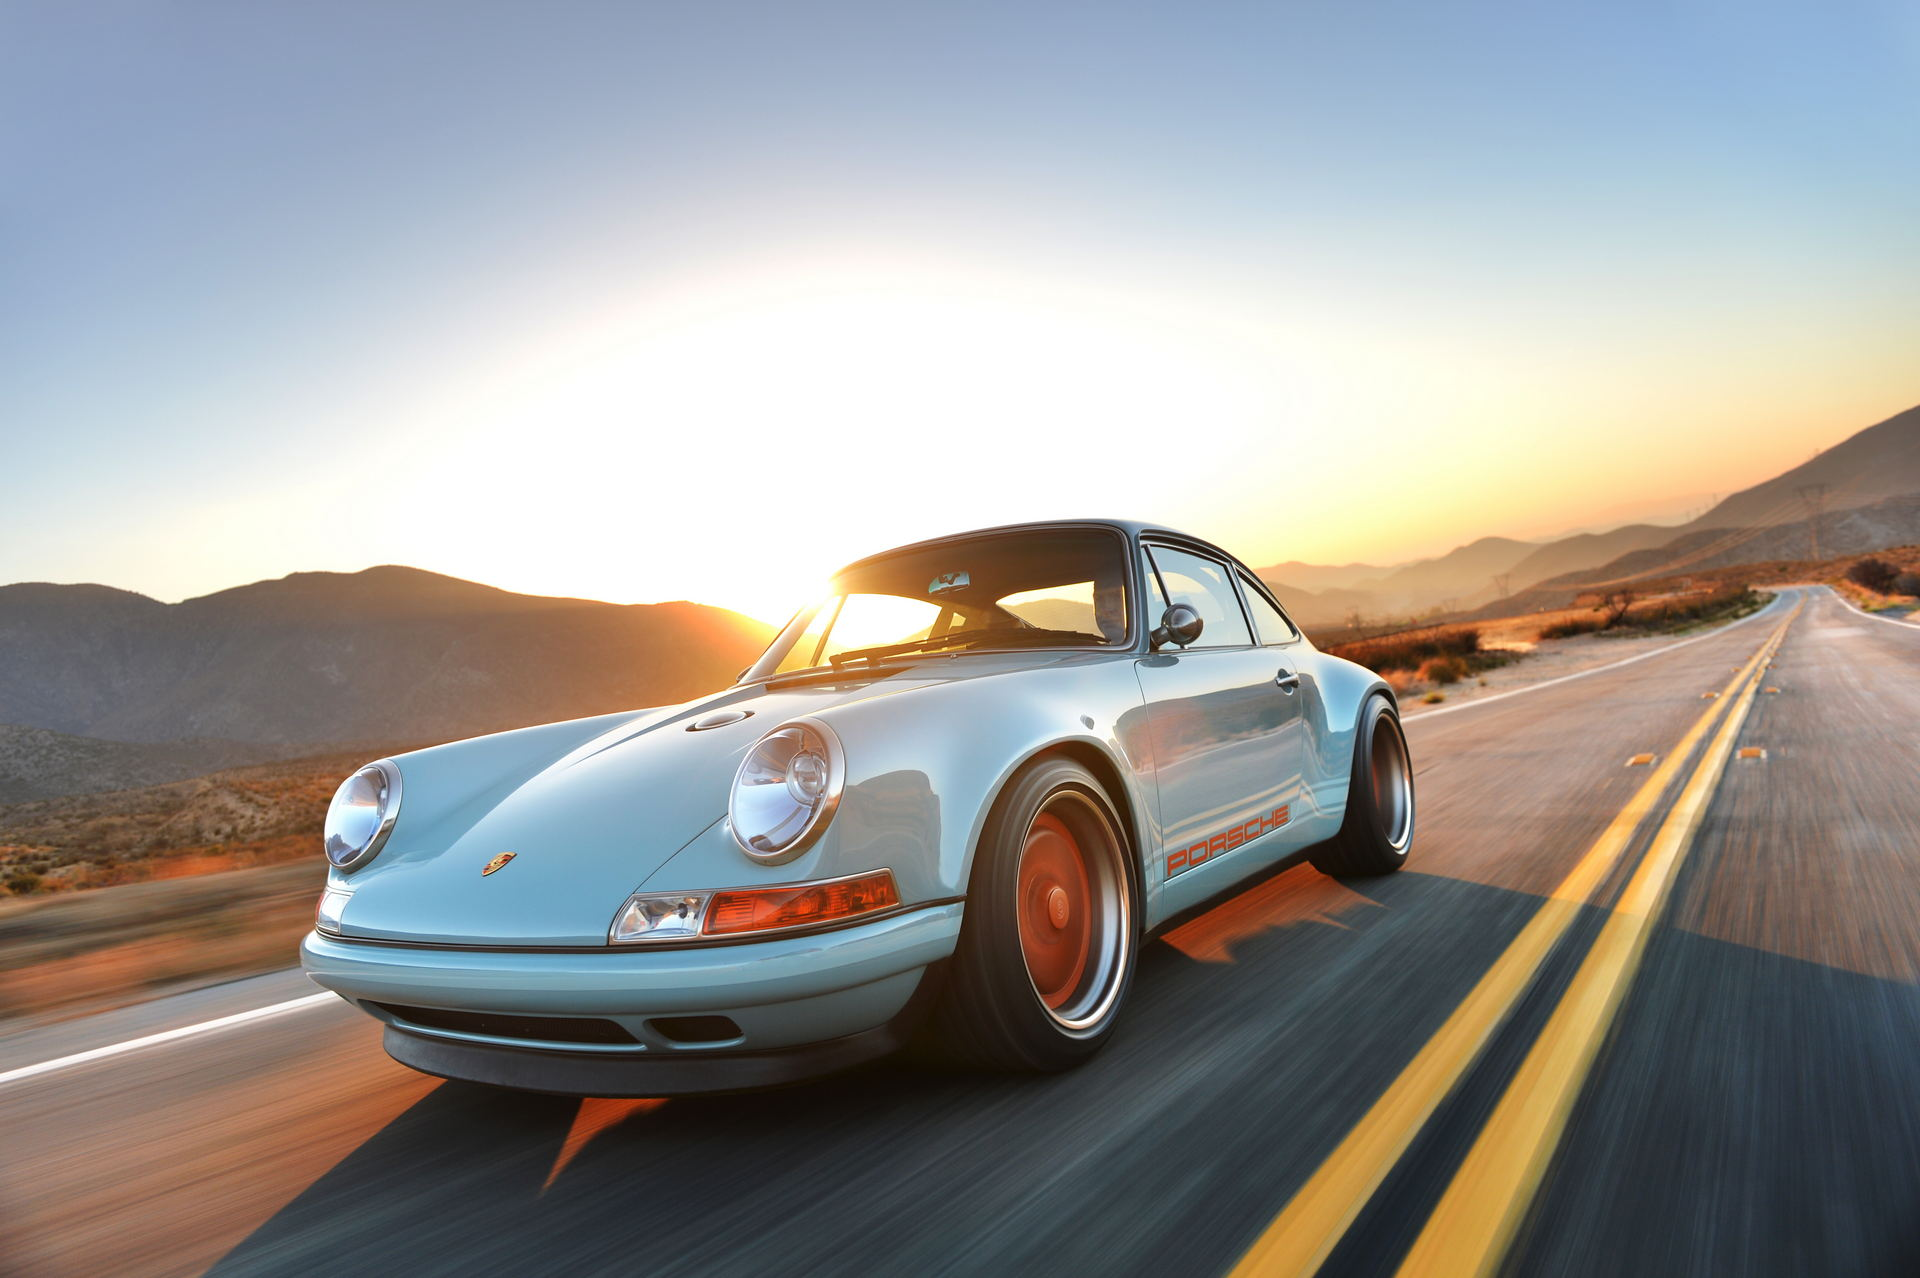 singer-911-racing-blue-60